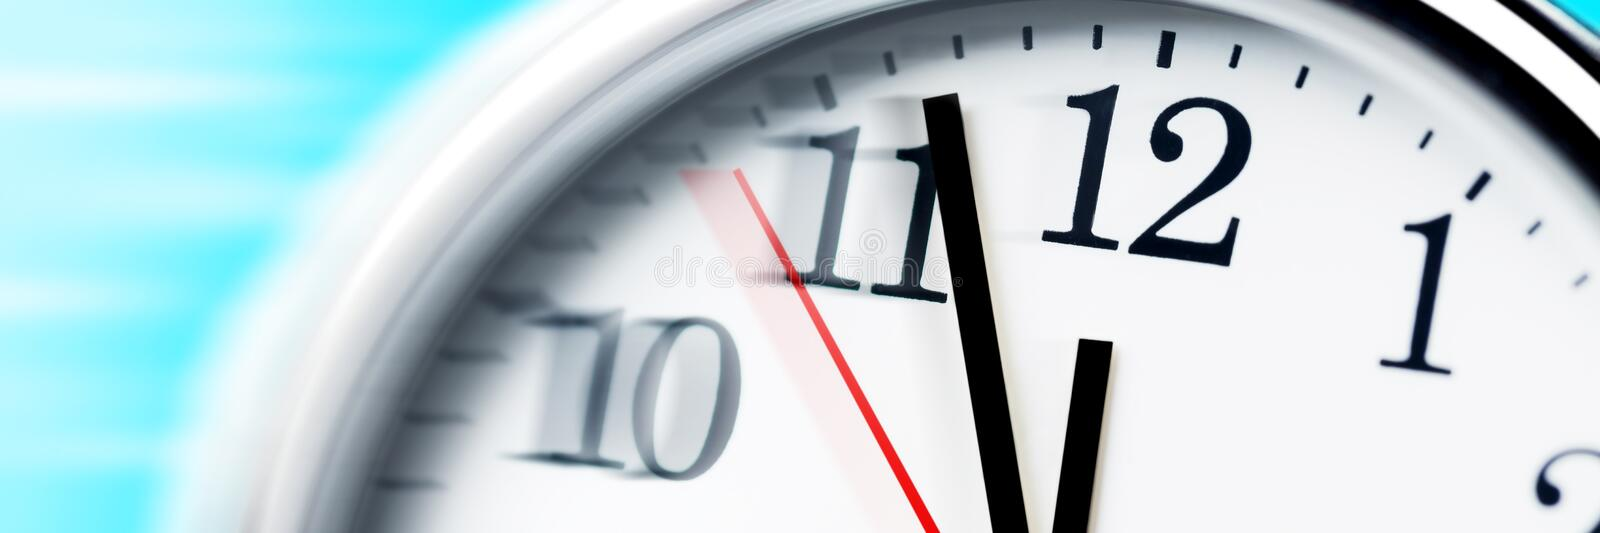 Running Out Of Time!. Clock with blurred hands and numbers. Running Out Of Time Concept stock image